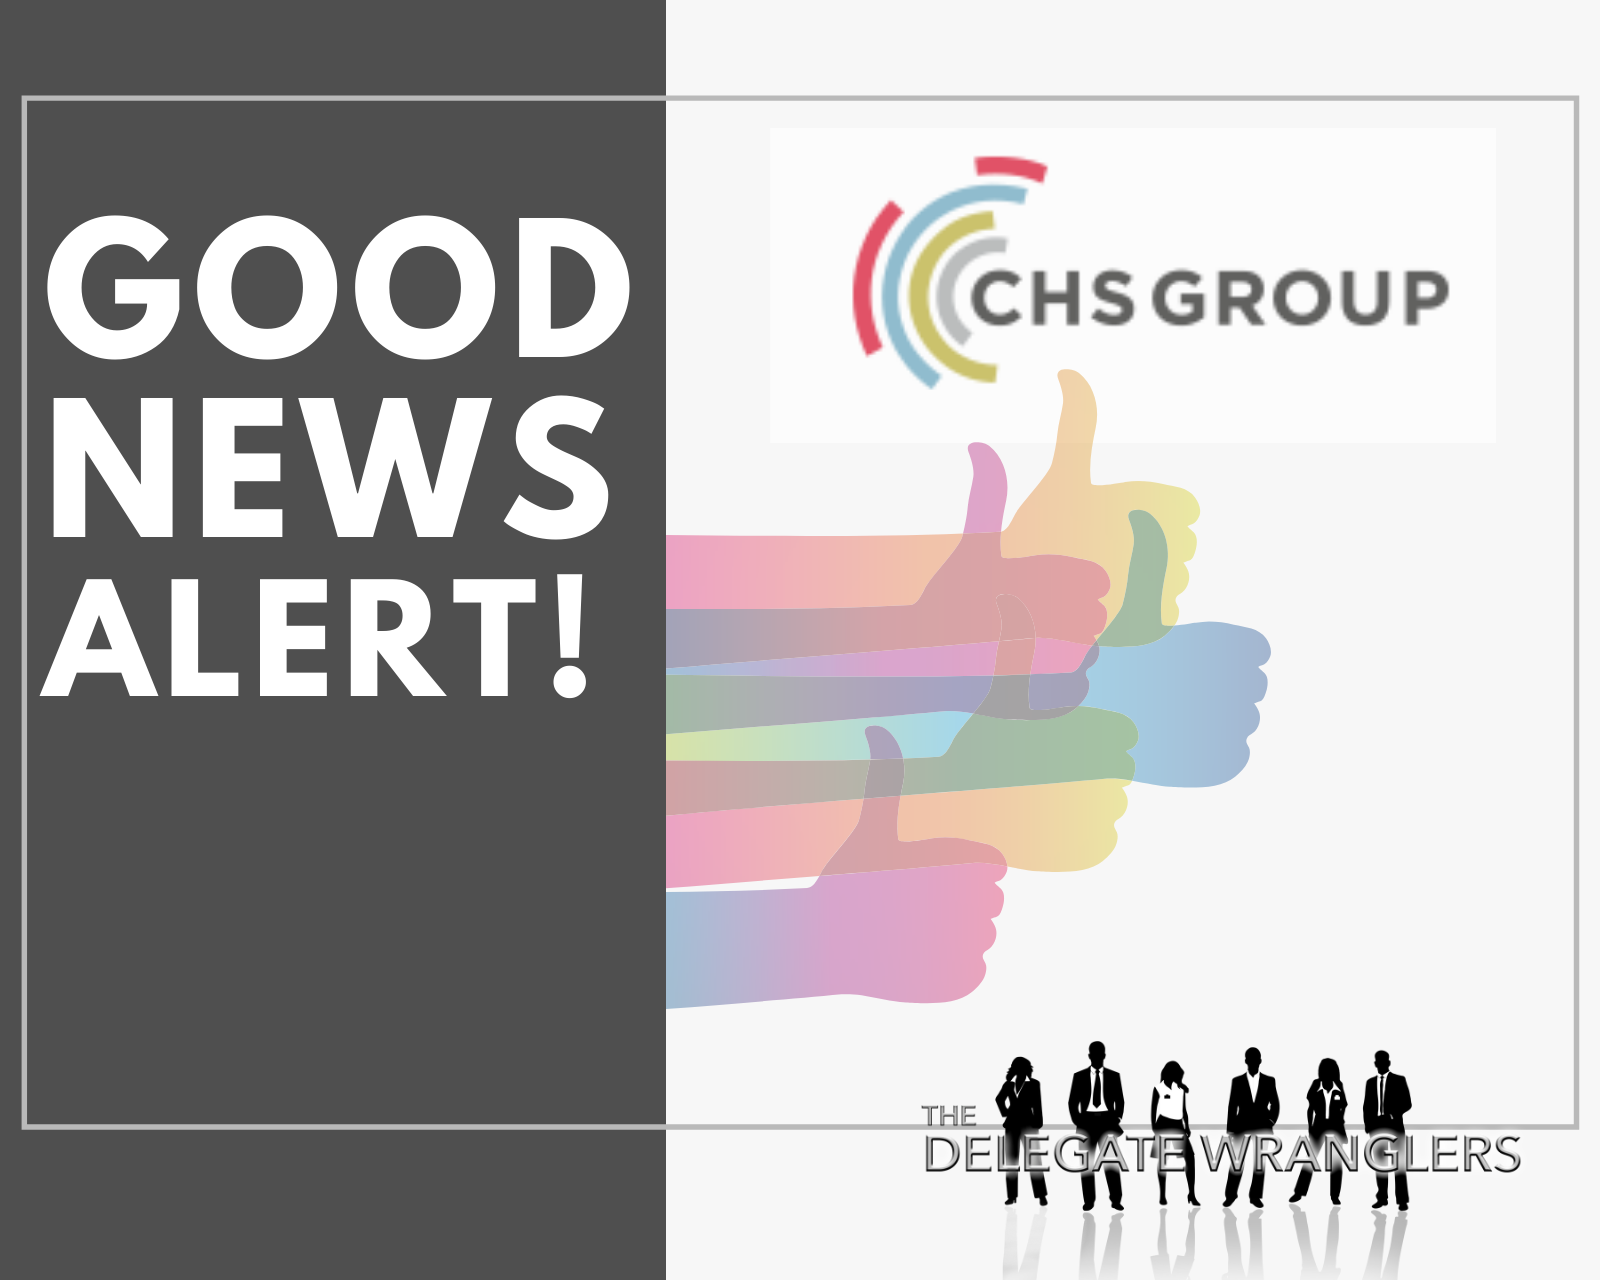 CHS Group Shortlisted for AEO Excellence Award